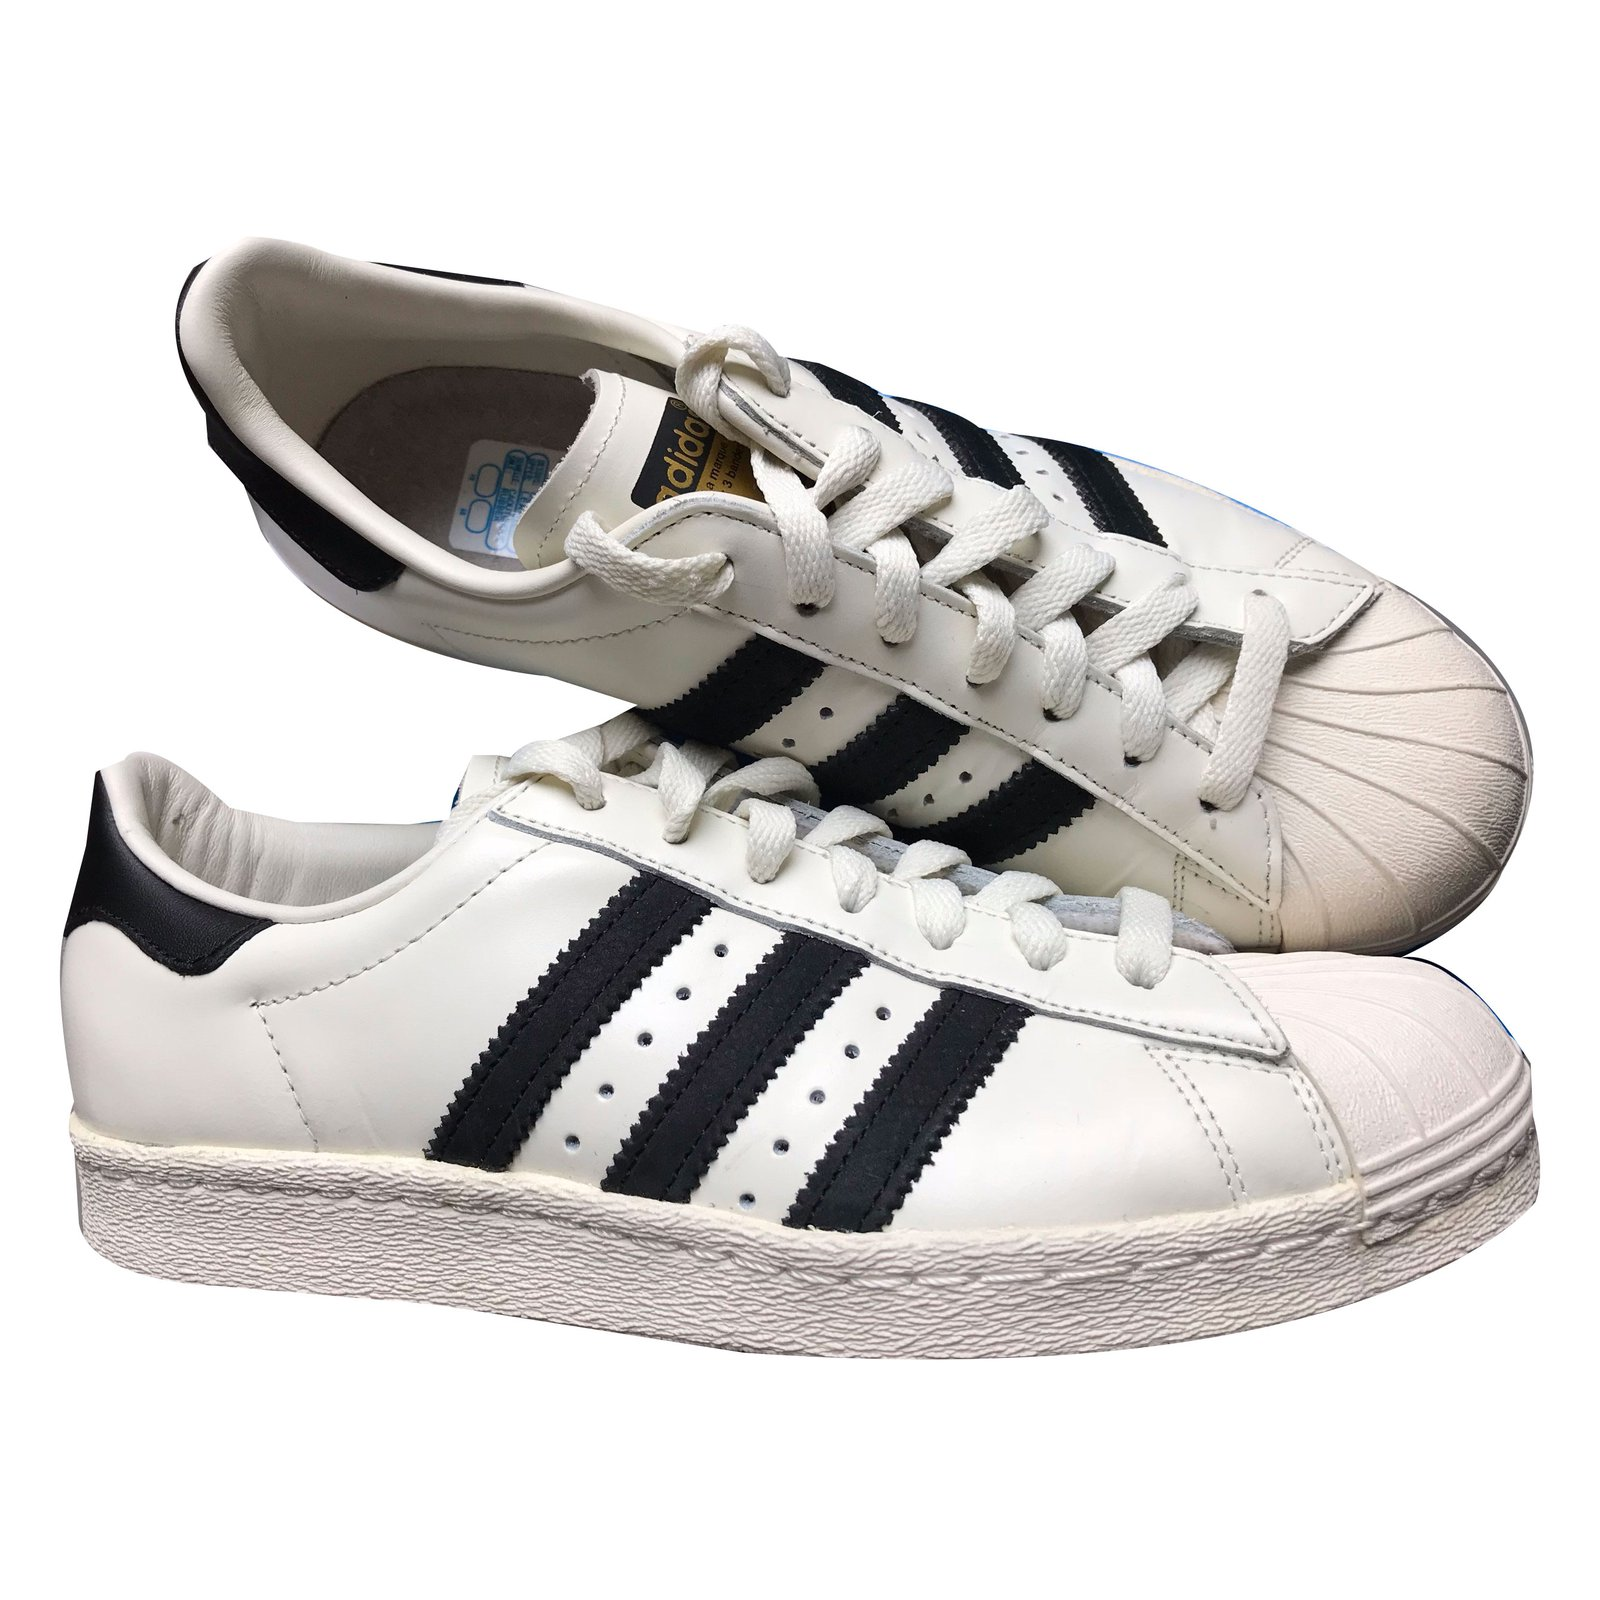 c3df53252df9 Adidas Superstar 80s DLX Sneakers Leather White ref.48099 - Joli Closet